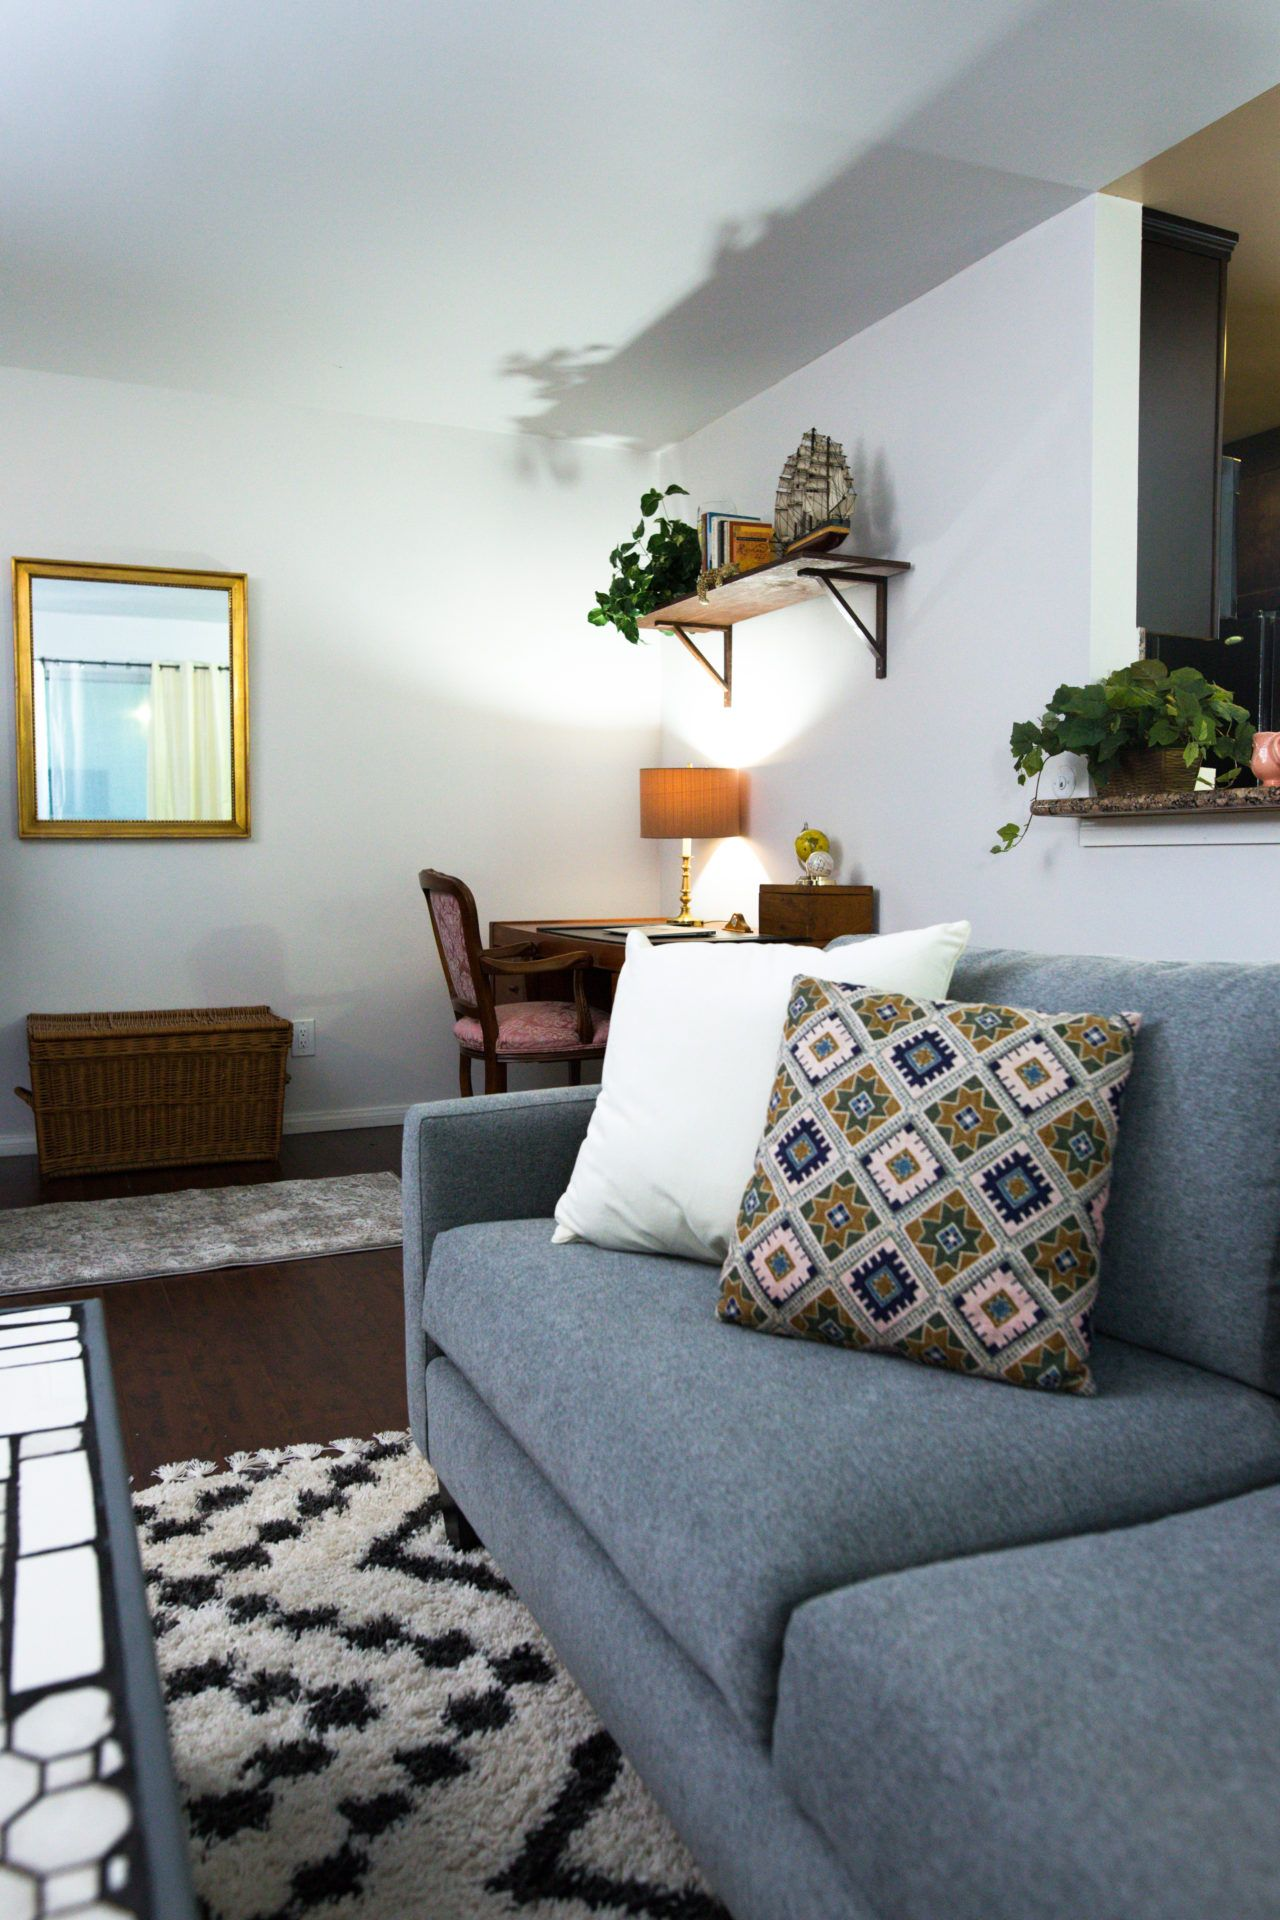 Newlyweds on a Budget! Living Room/ Dining Room Makeover ...